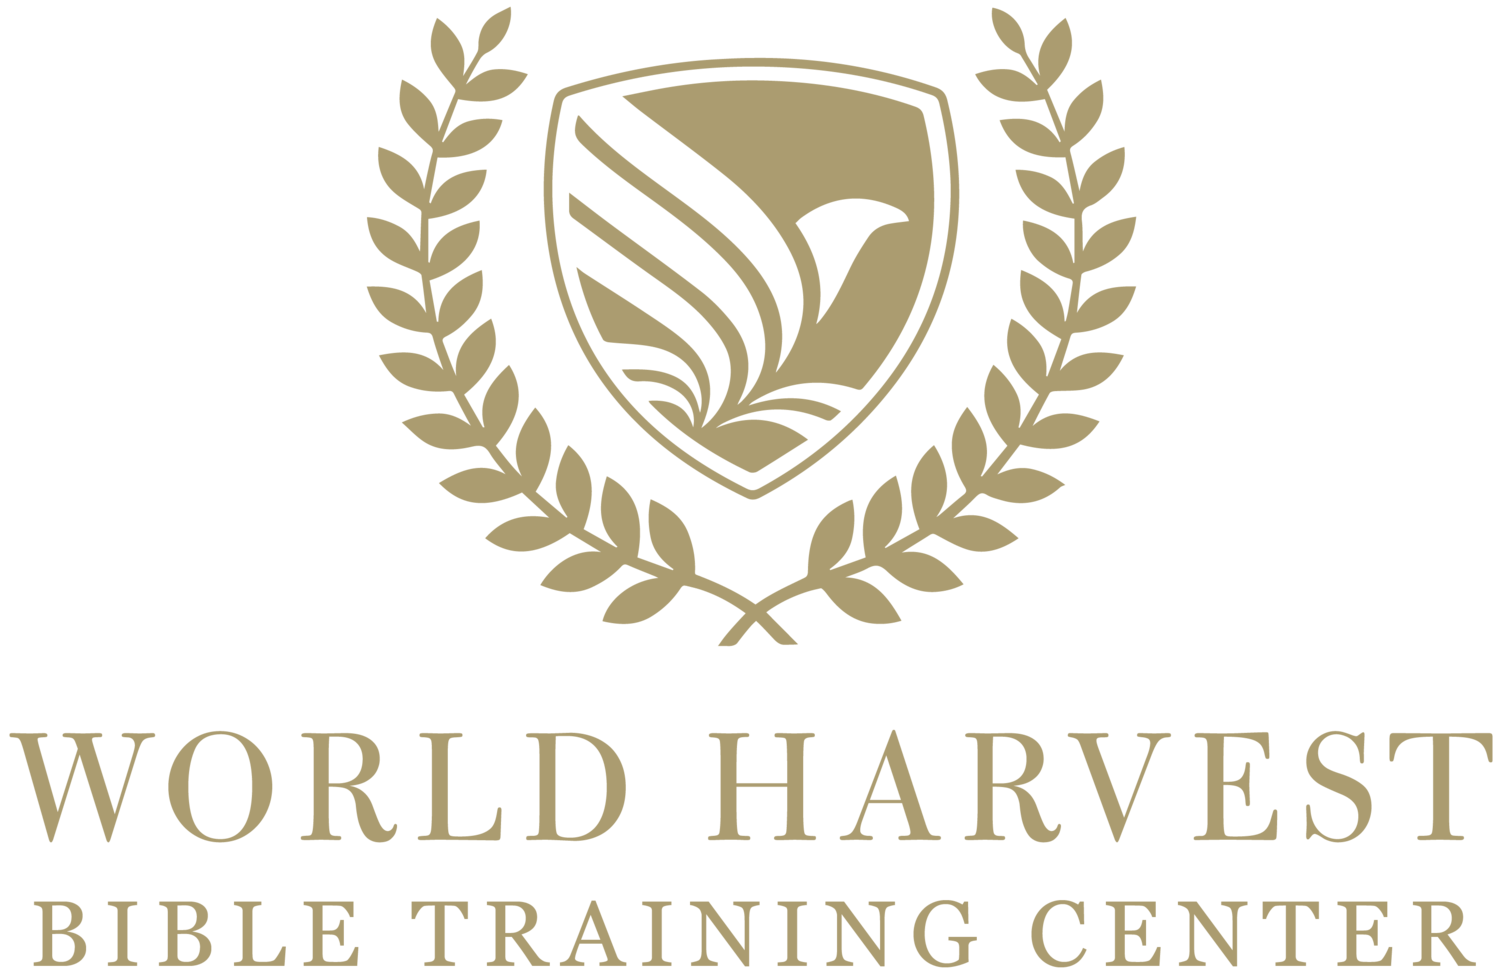 World Harvest Bible Training Center